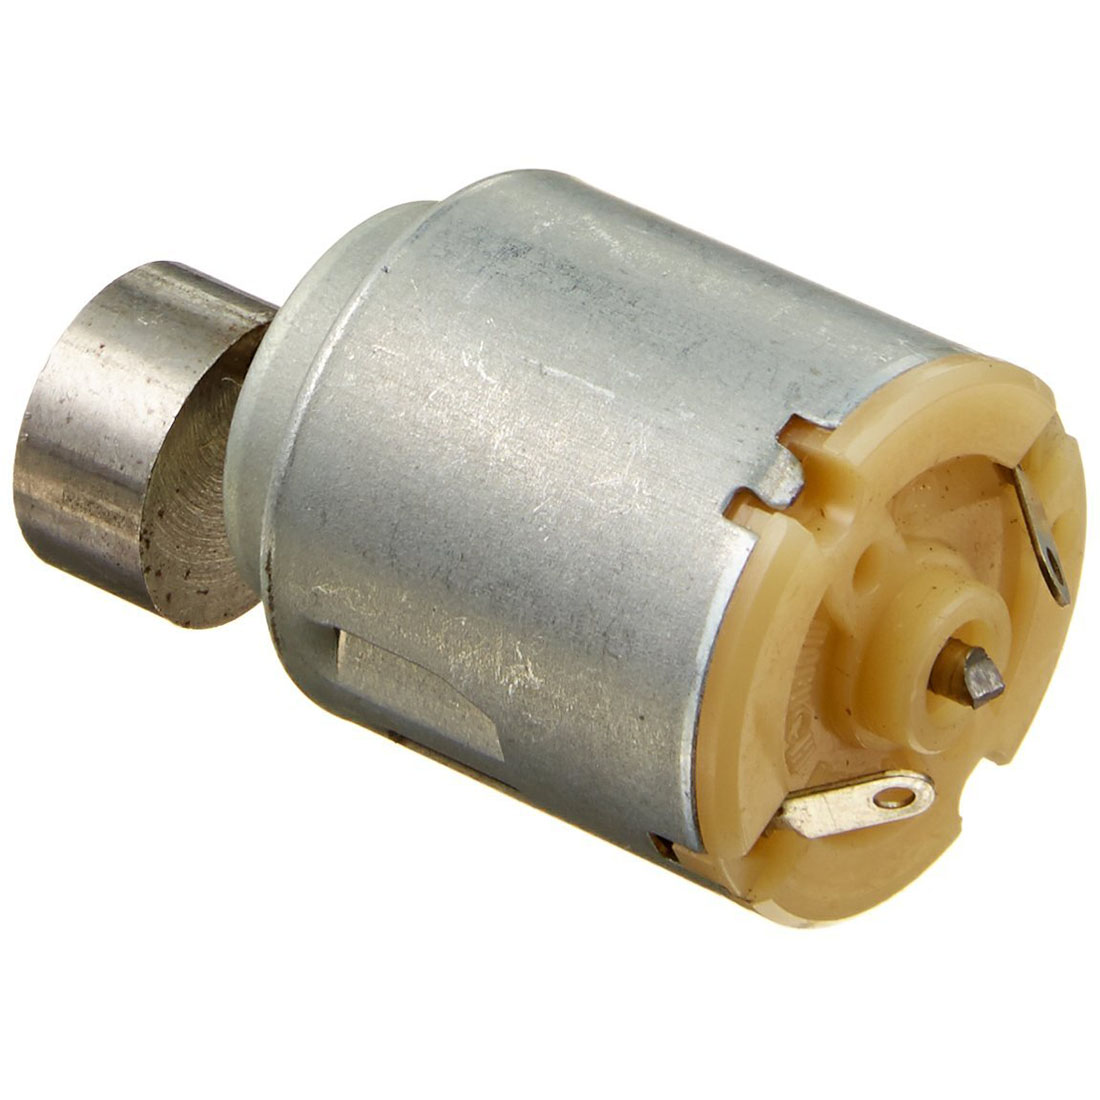 7000rpm output speed dc 3v electric vibration motor for Dc motor vibration analysis